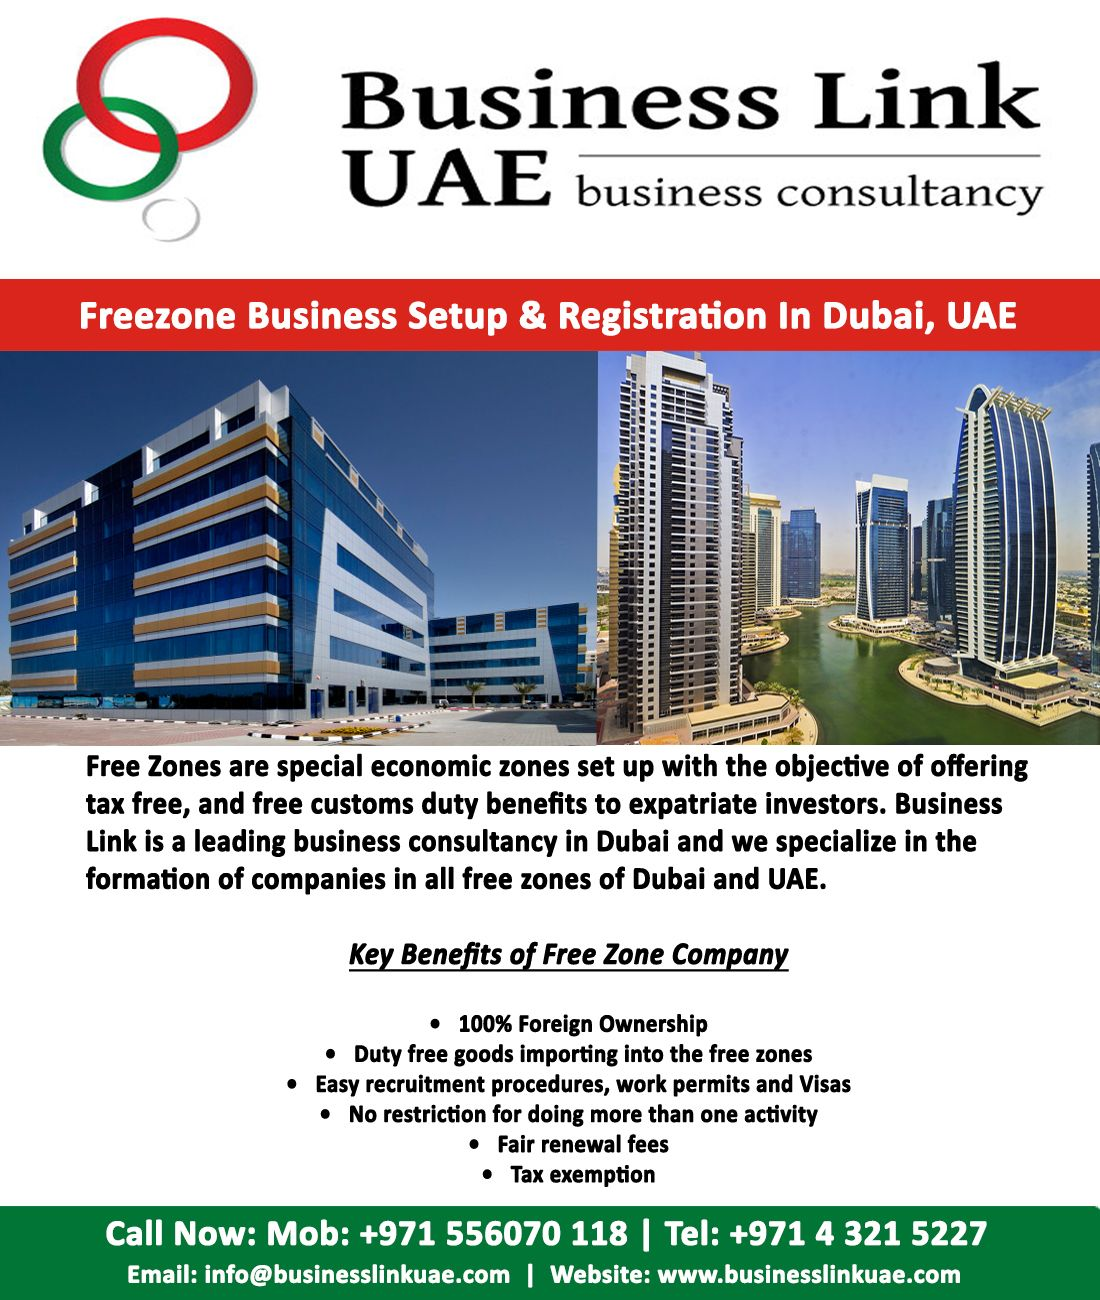 Get Expert Assistance for Free Zone Business Setup in